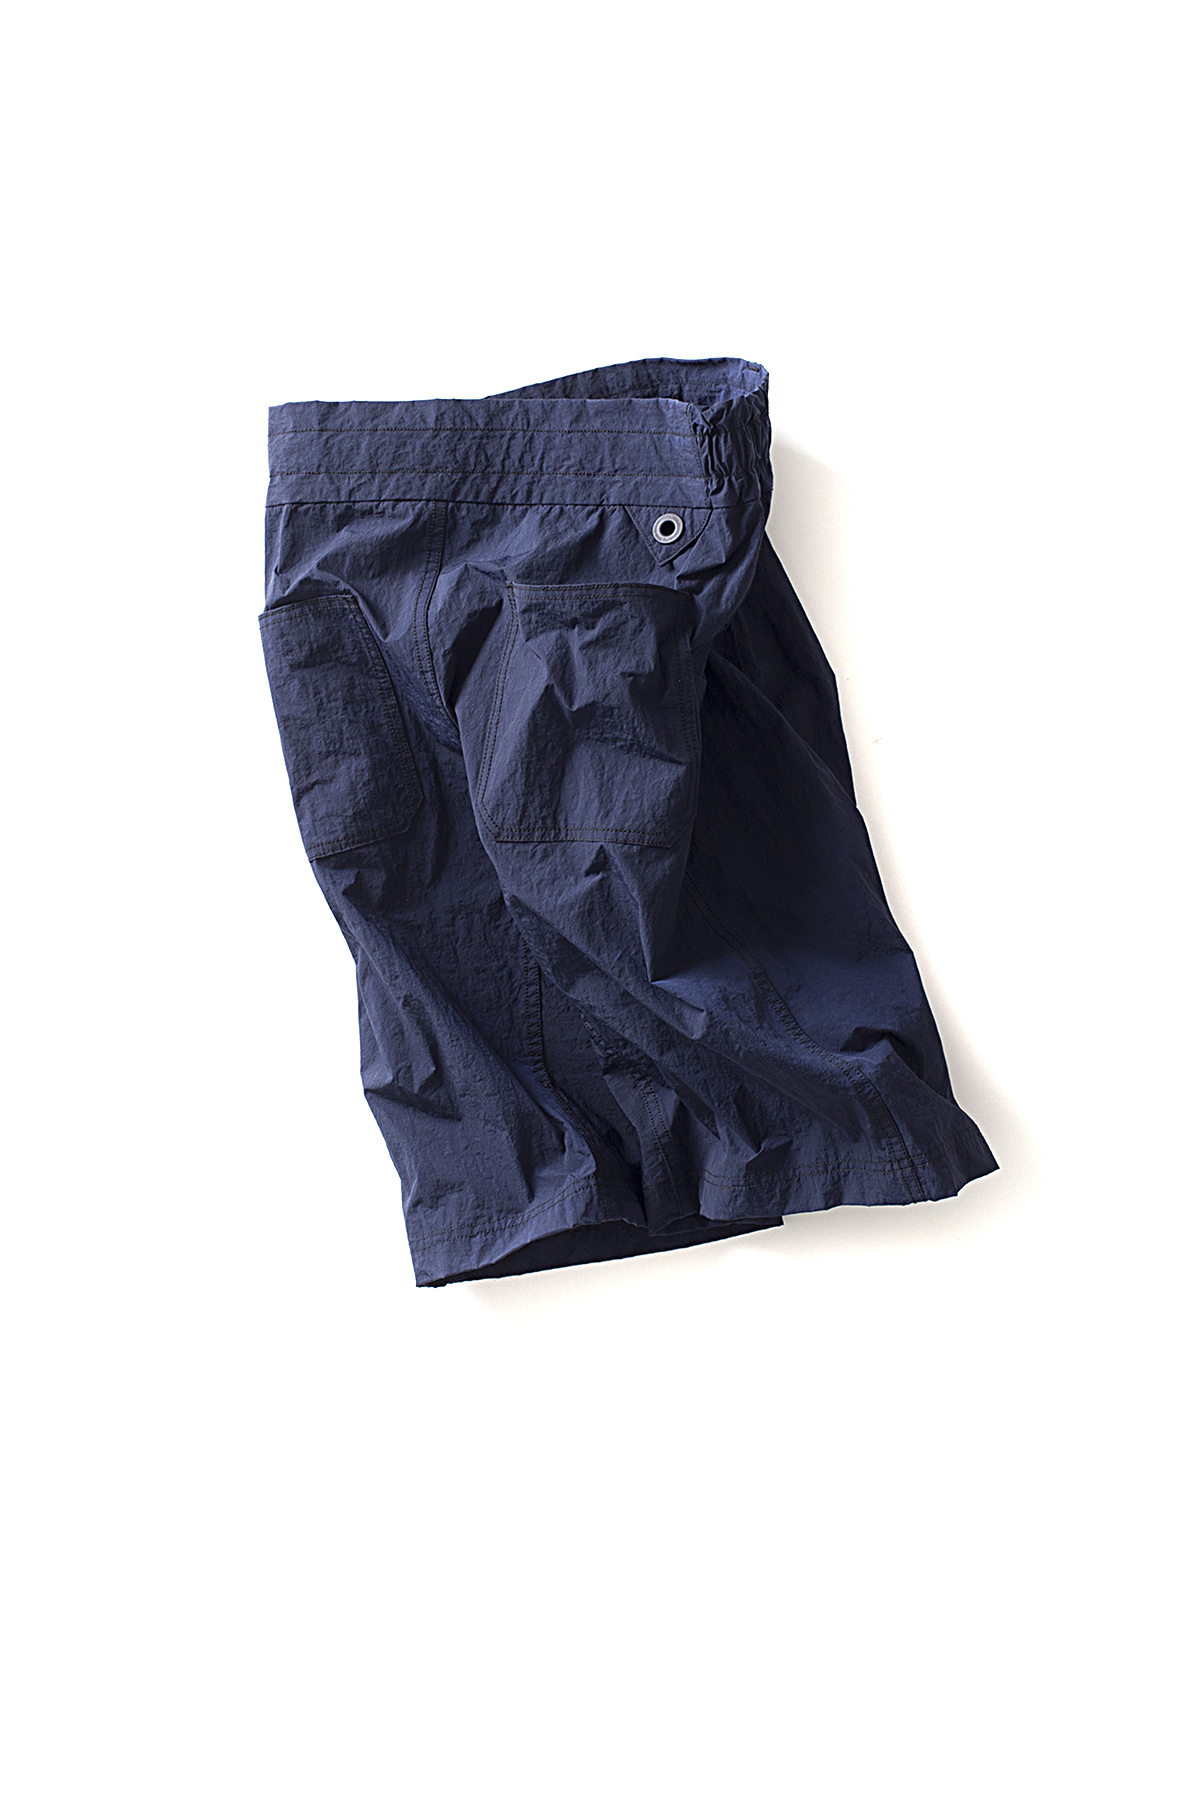 WHITE MOUNTAINEERING : 2-Tuck Wide Short Pants (Navy)